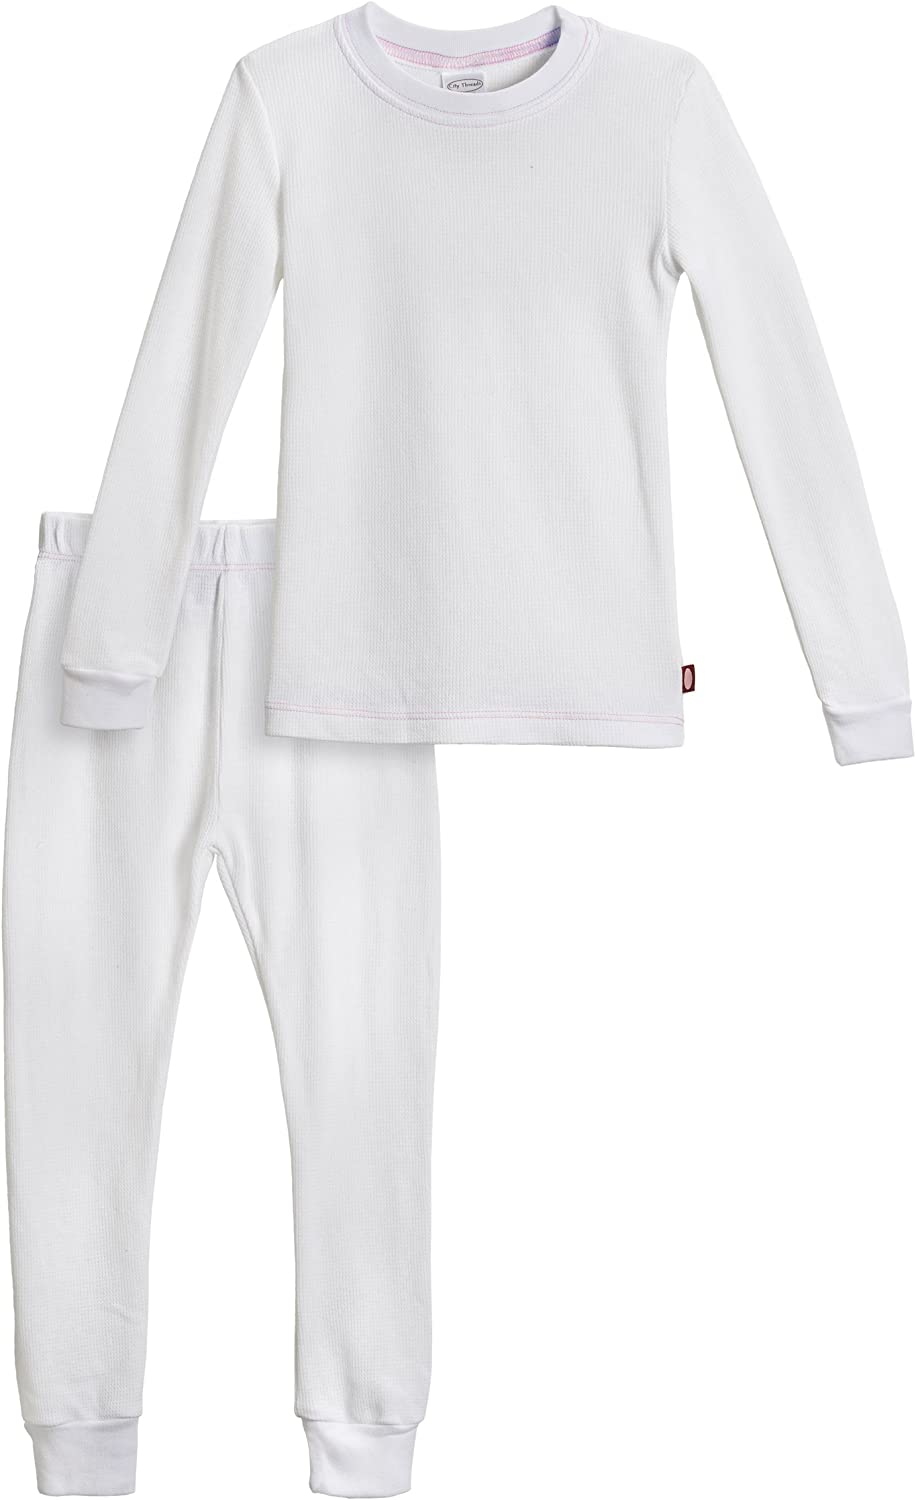 City Threads Girls Thermal Underwear Set Long John, Soft Breathable Cotton Base Layer - Made in USA